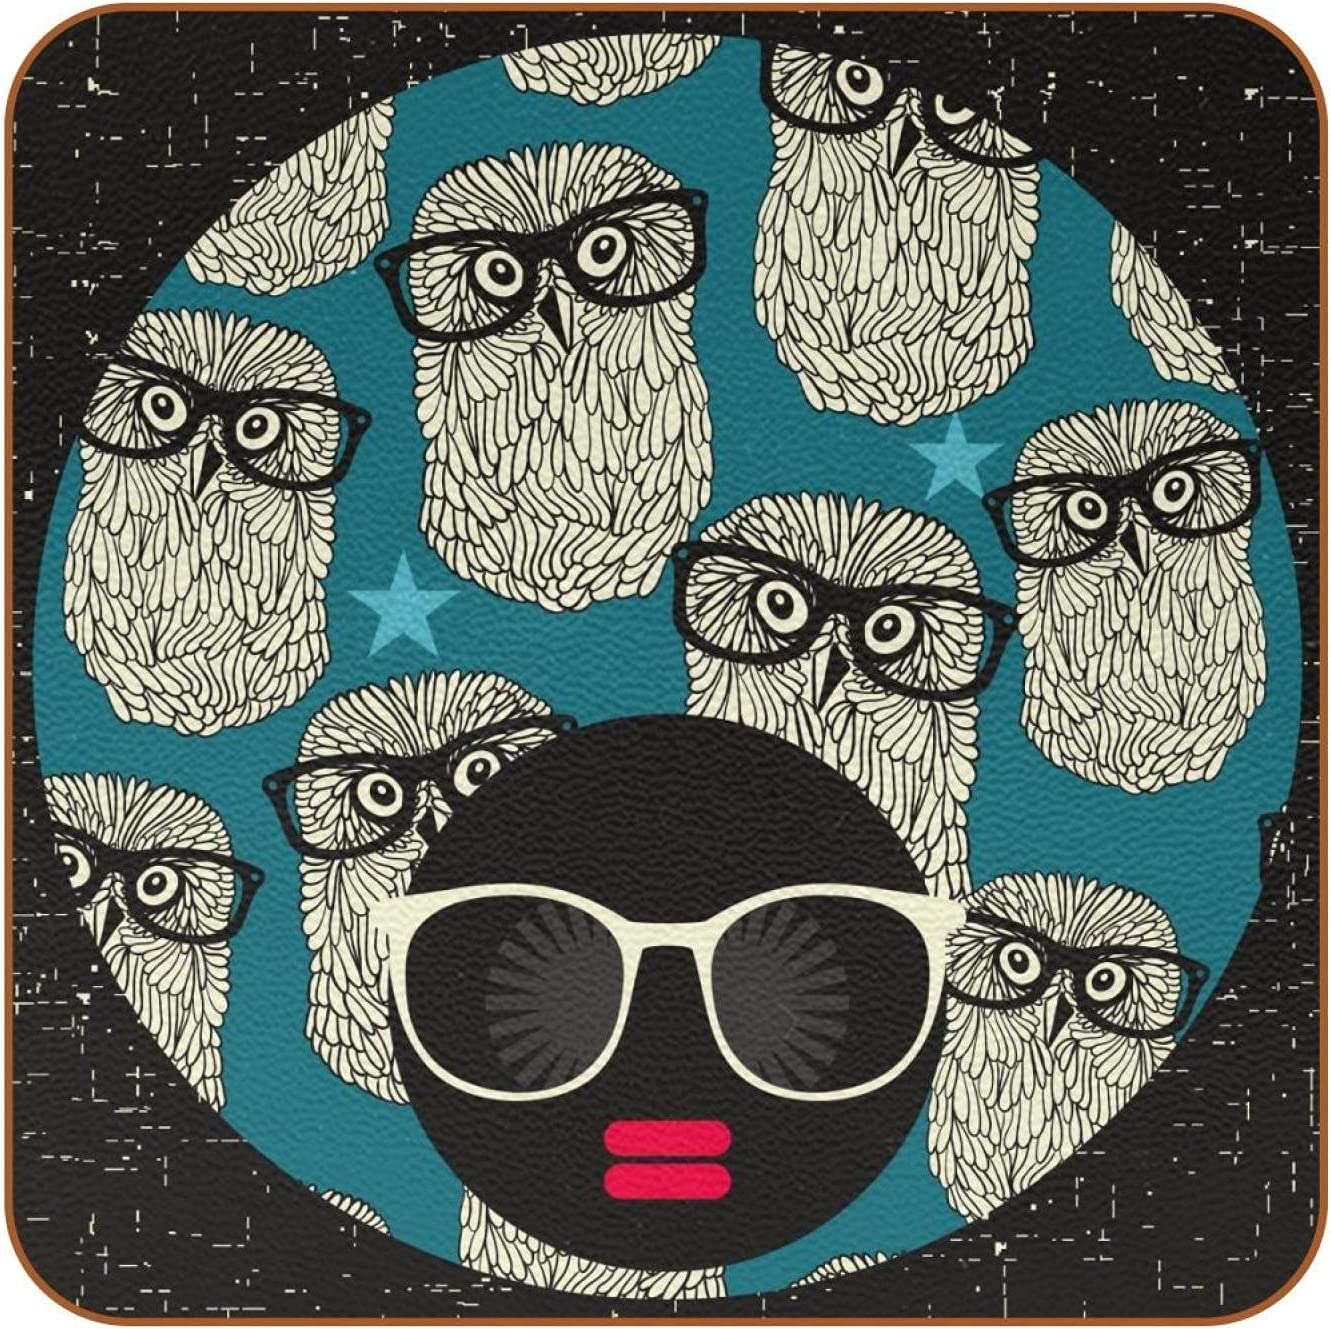 Coasters for Drinks Cute Owl Glasses Pattern Leather Square Mug Cup Pad Mat for Protect Furniture, Heat Resistant, Kitchen Bar Decor, Set of 6